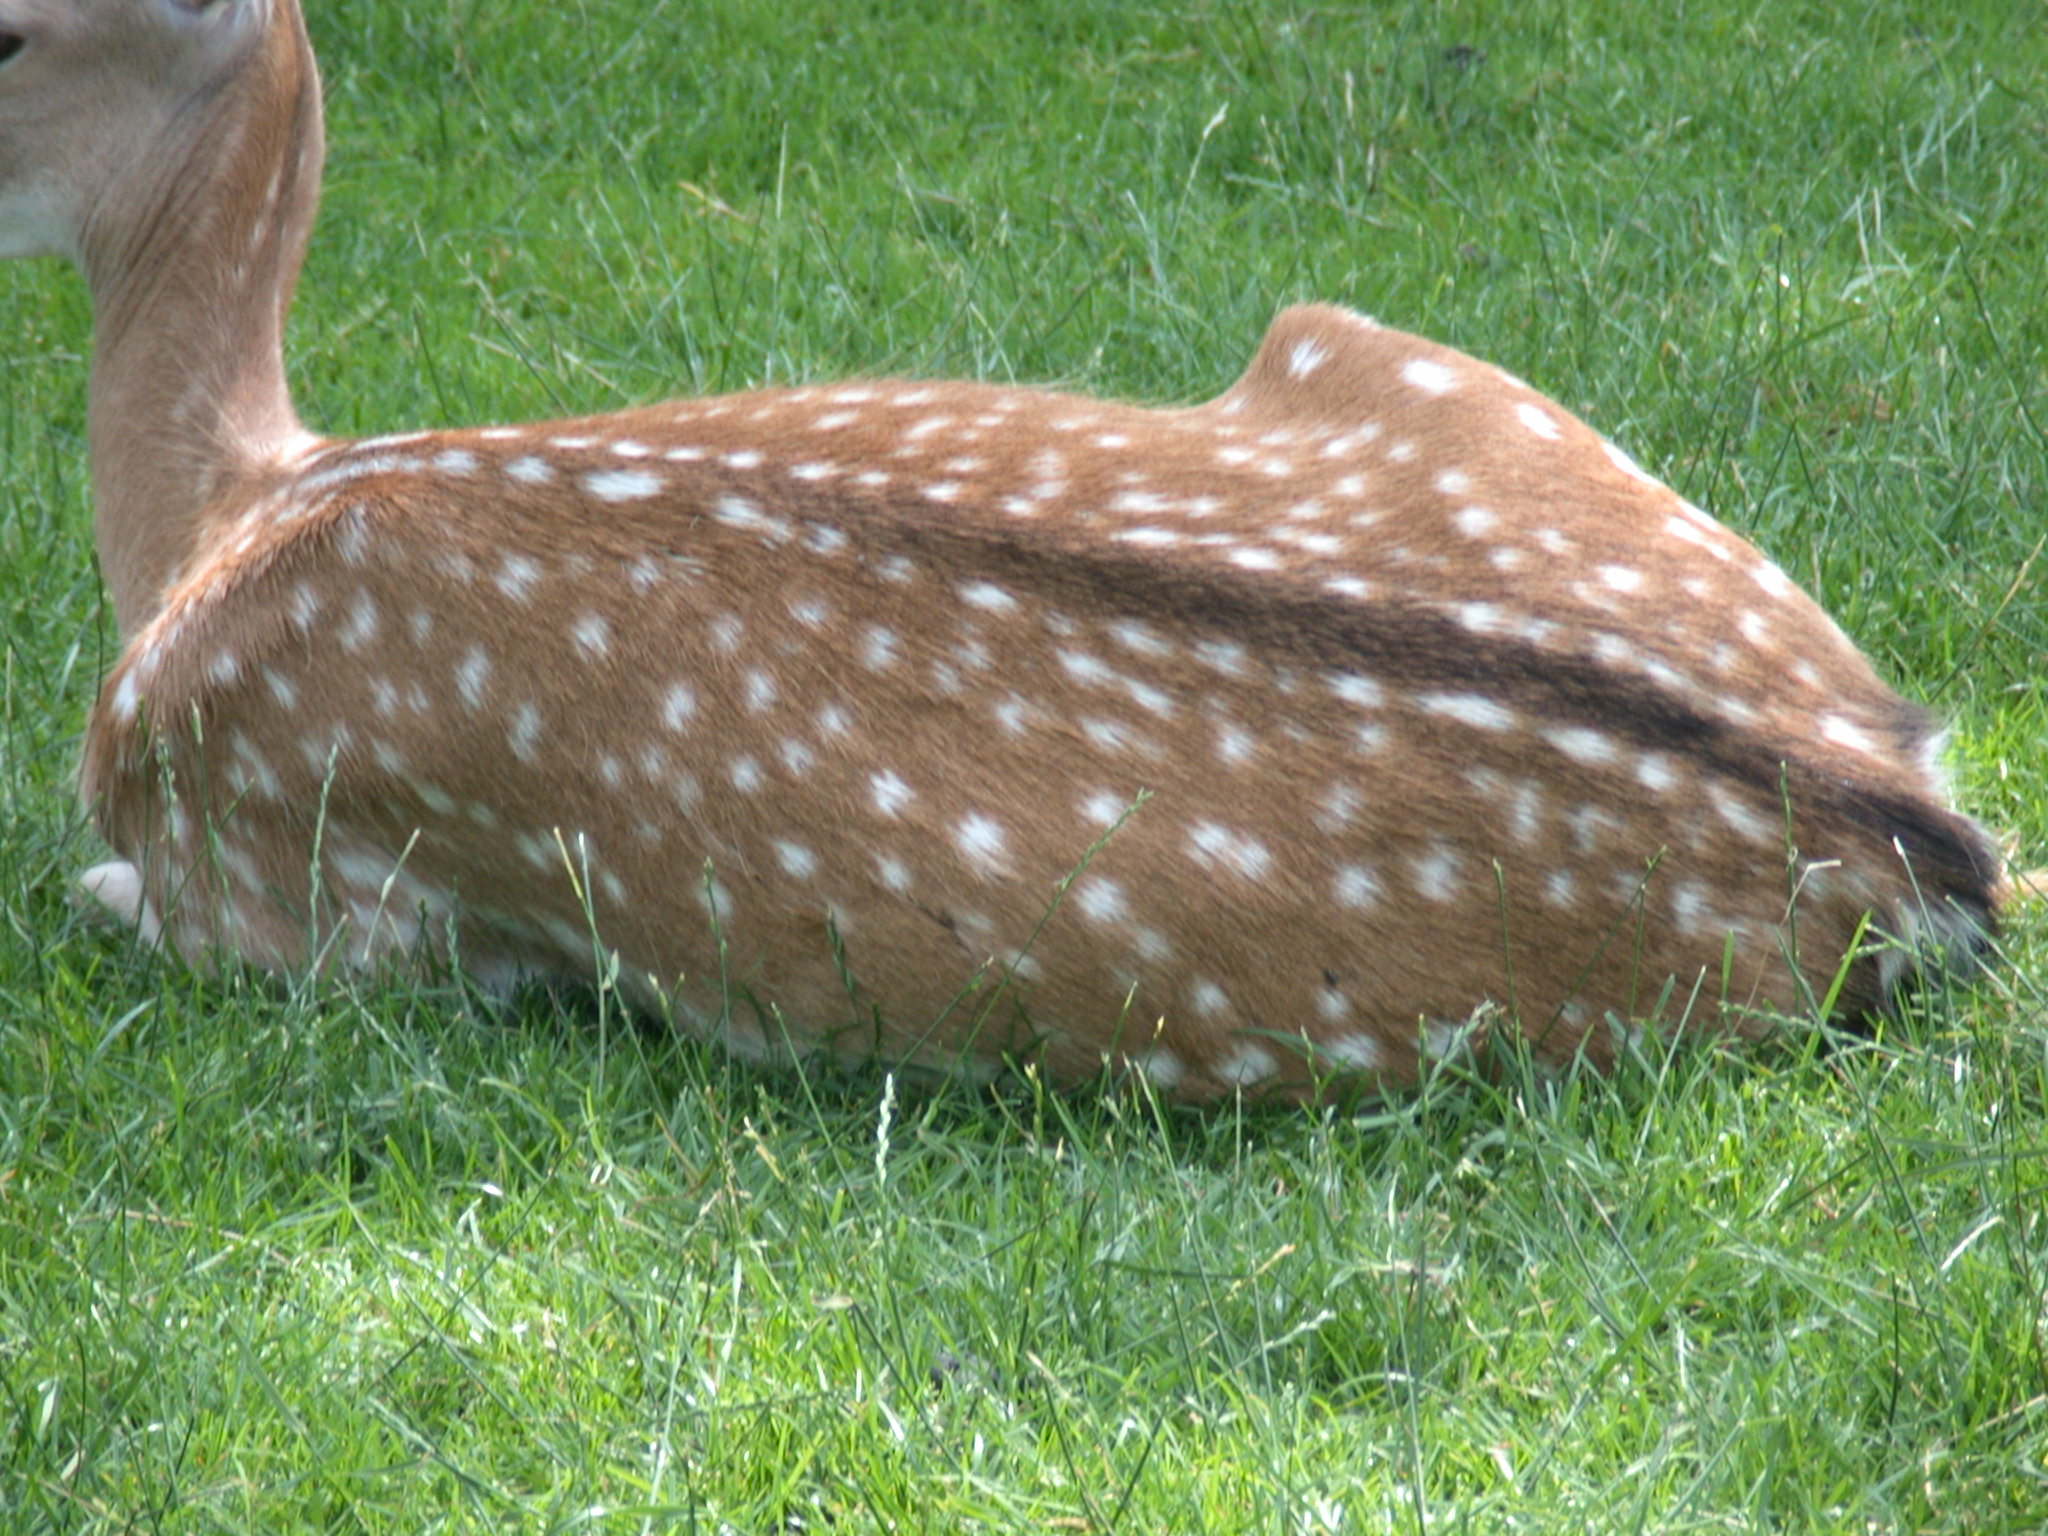 deer female lying spots spotted fur back ears petting-zoo pettingzoo petting zoo grass in the